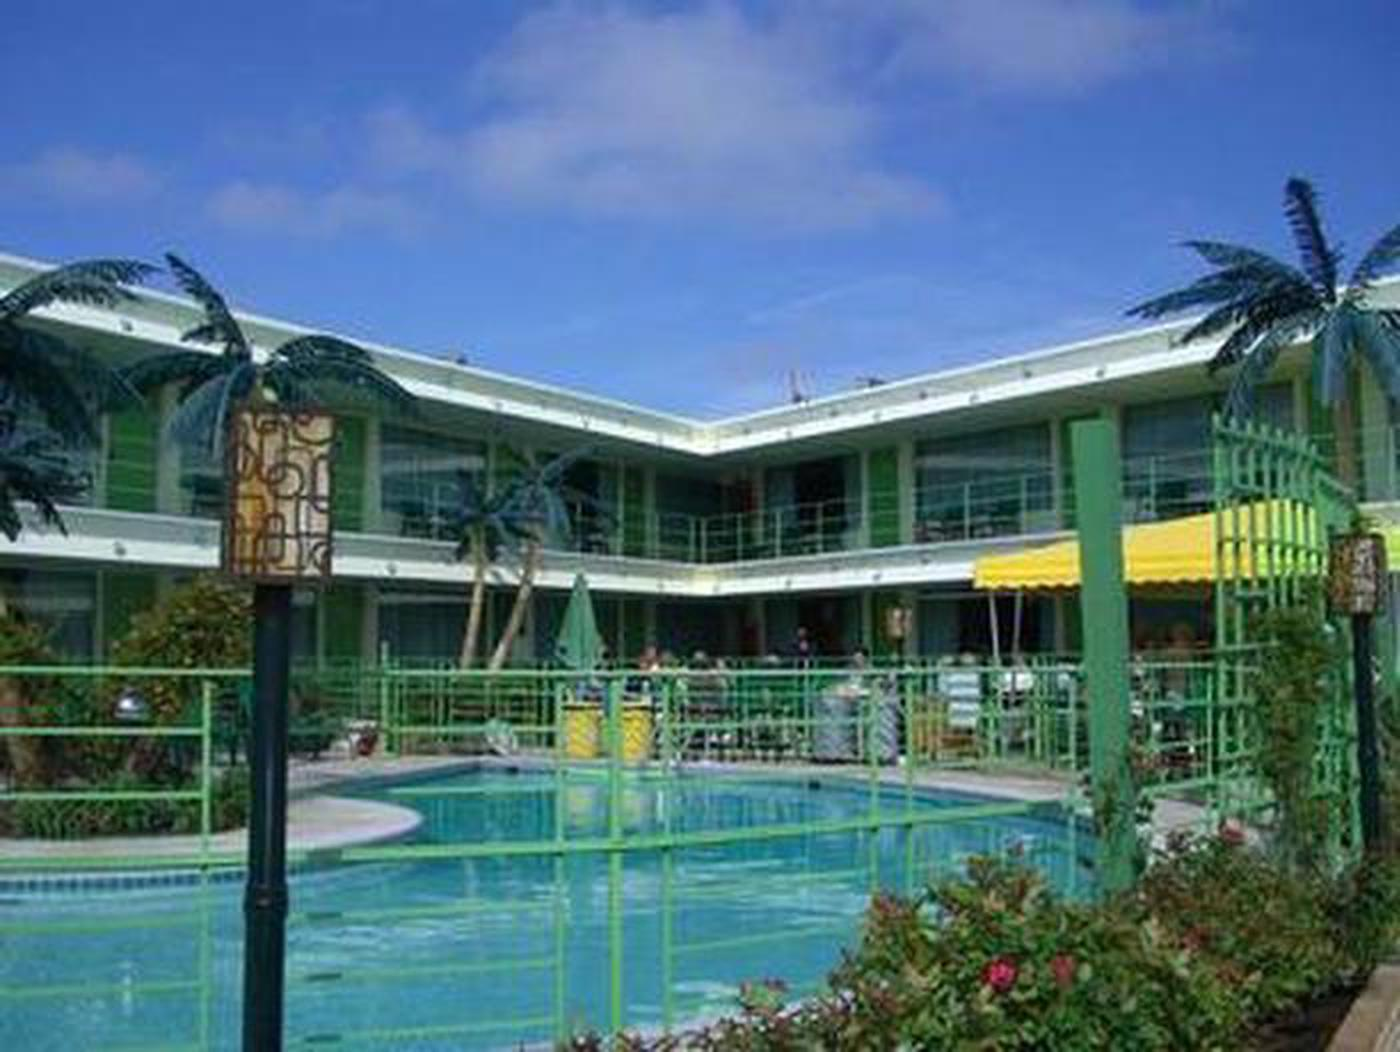 Many Activities & EventsThe landmark Caribbean Motel treats guests to nine special event weekends each season from the opening weekend at the end of April to the closing weekend in mid-October. All special event weekends include on-site meals, libations, and live entertainment for no additional charge.